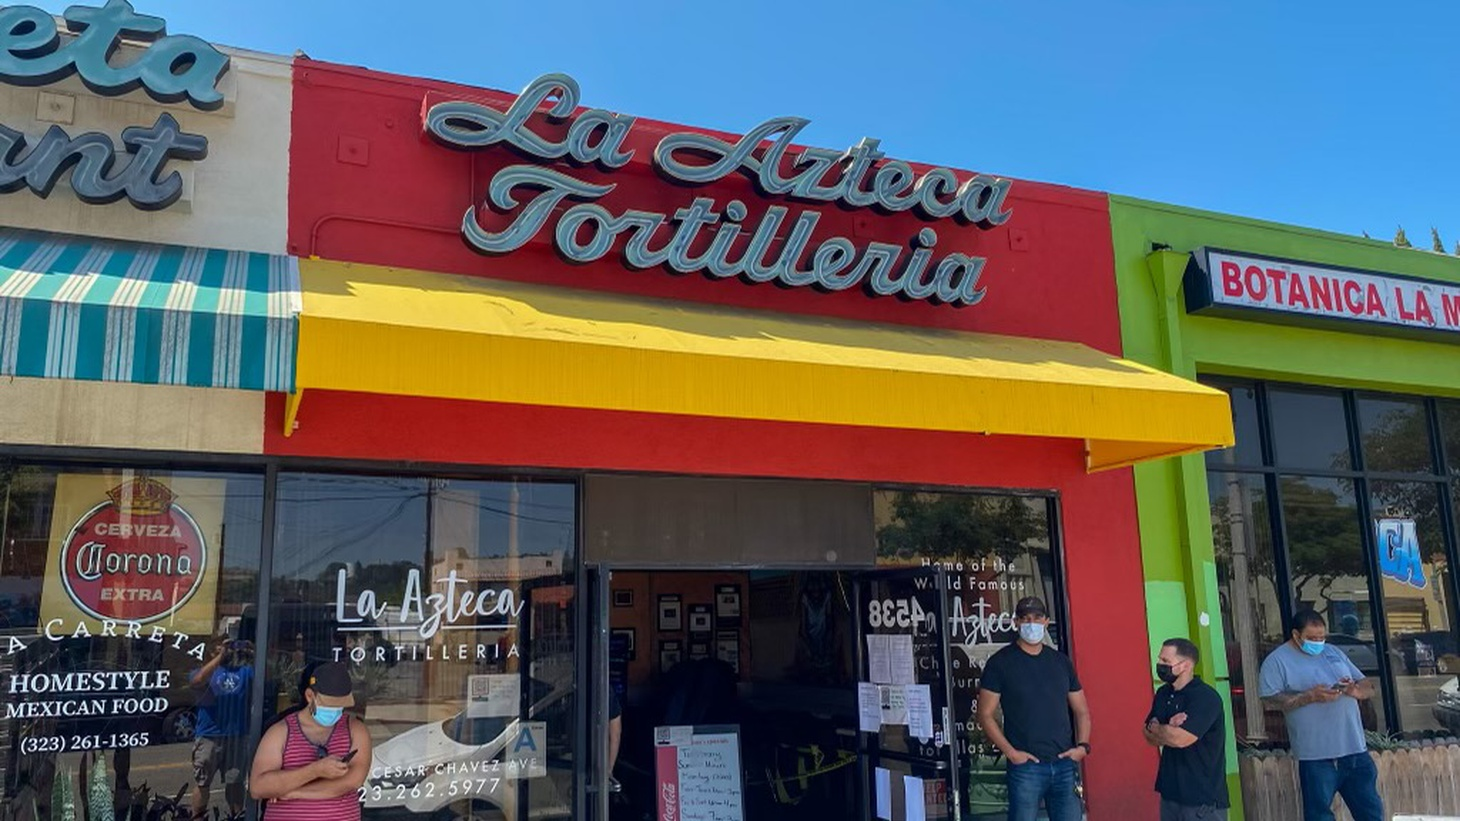 La Azteca is one of over a dozen stops on the tortilla runner's journey across Southern California.